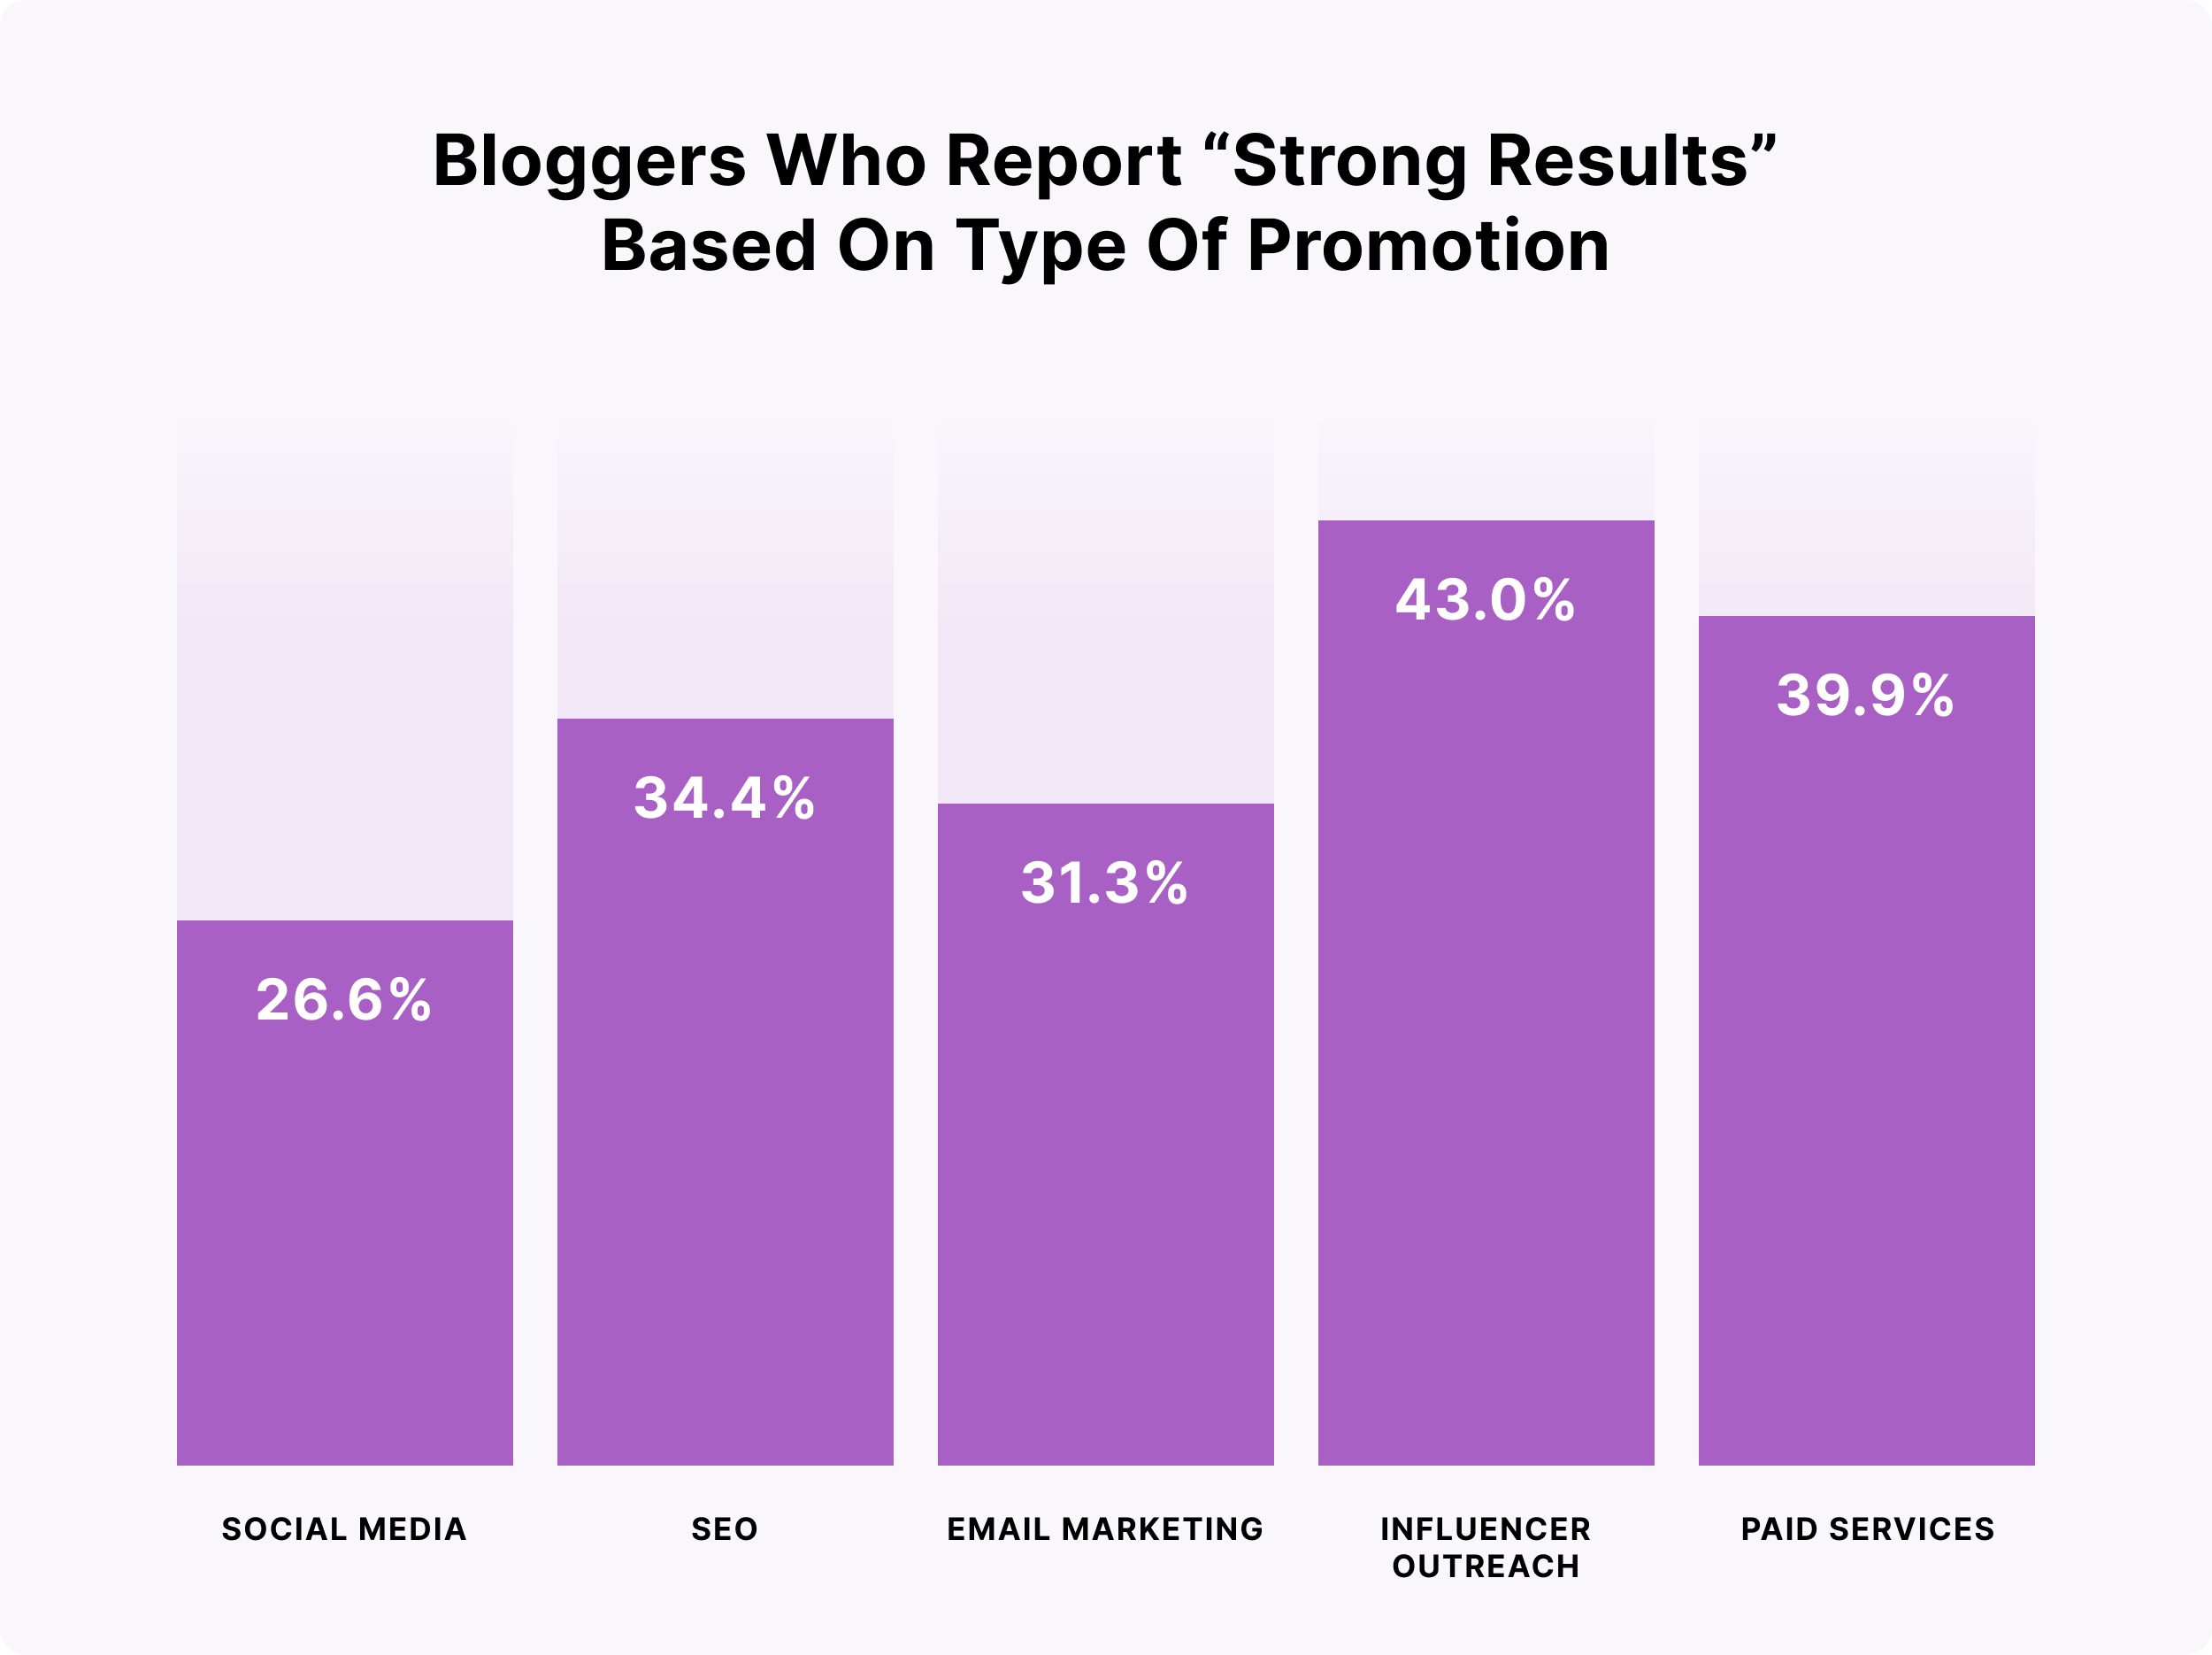 Bloggers who report strong results based on type of promotion